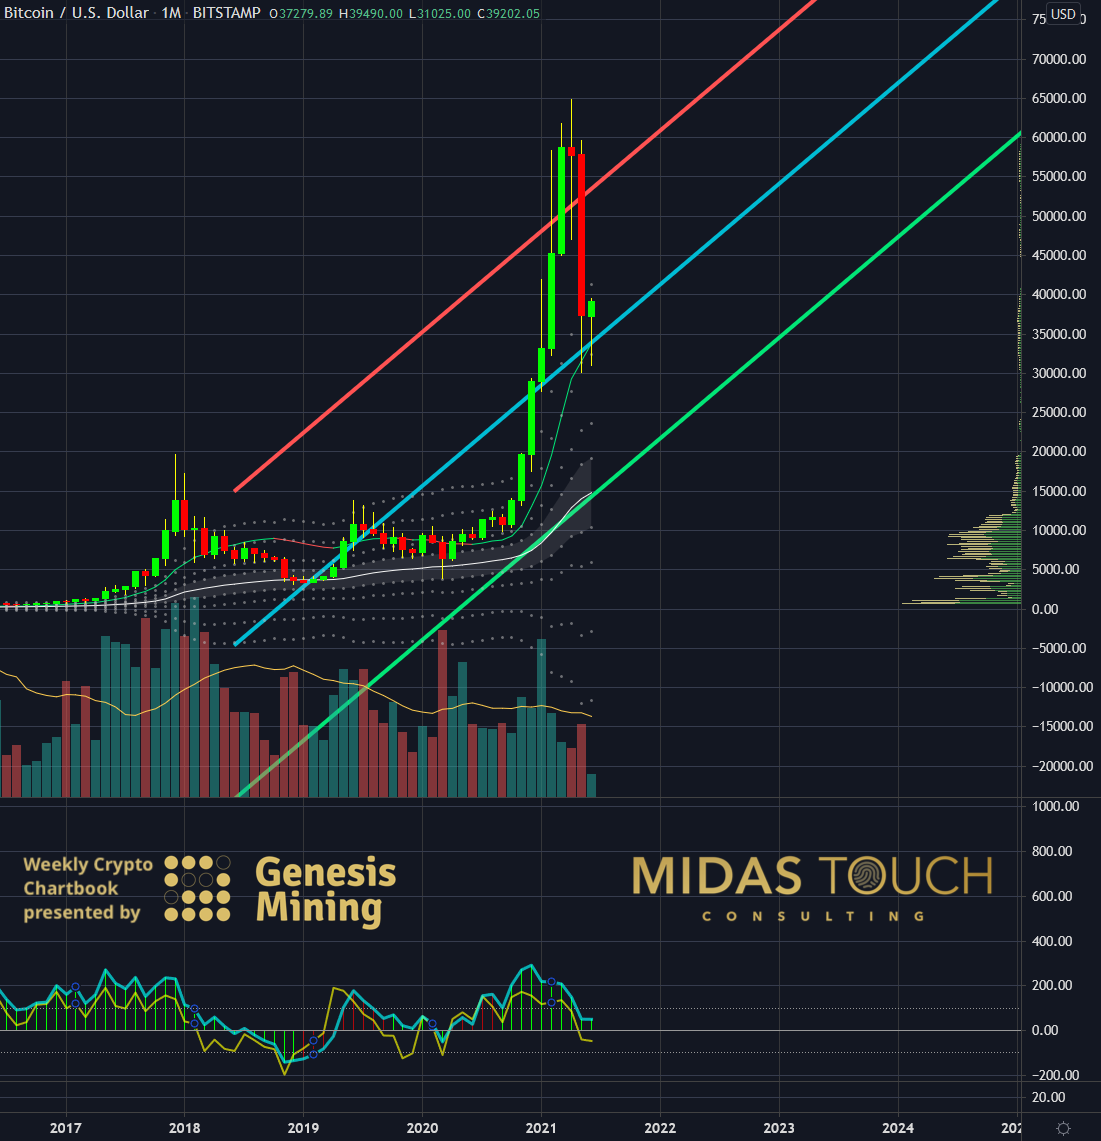 Bitcoin in US-Dollar, monthly chart as of June 14th, 2021